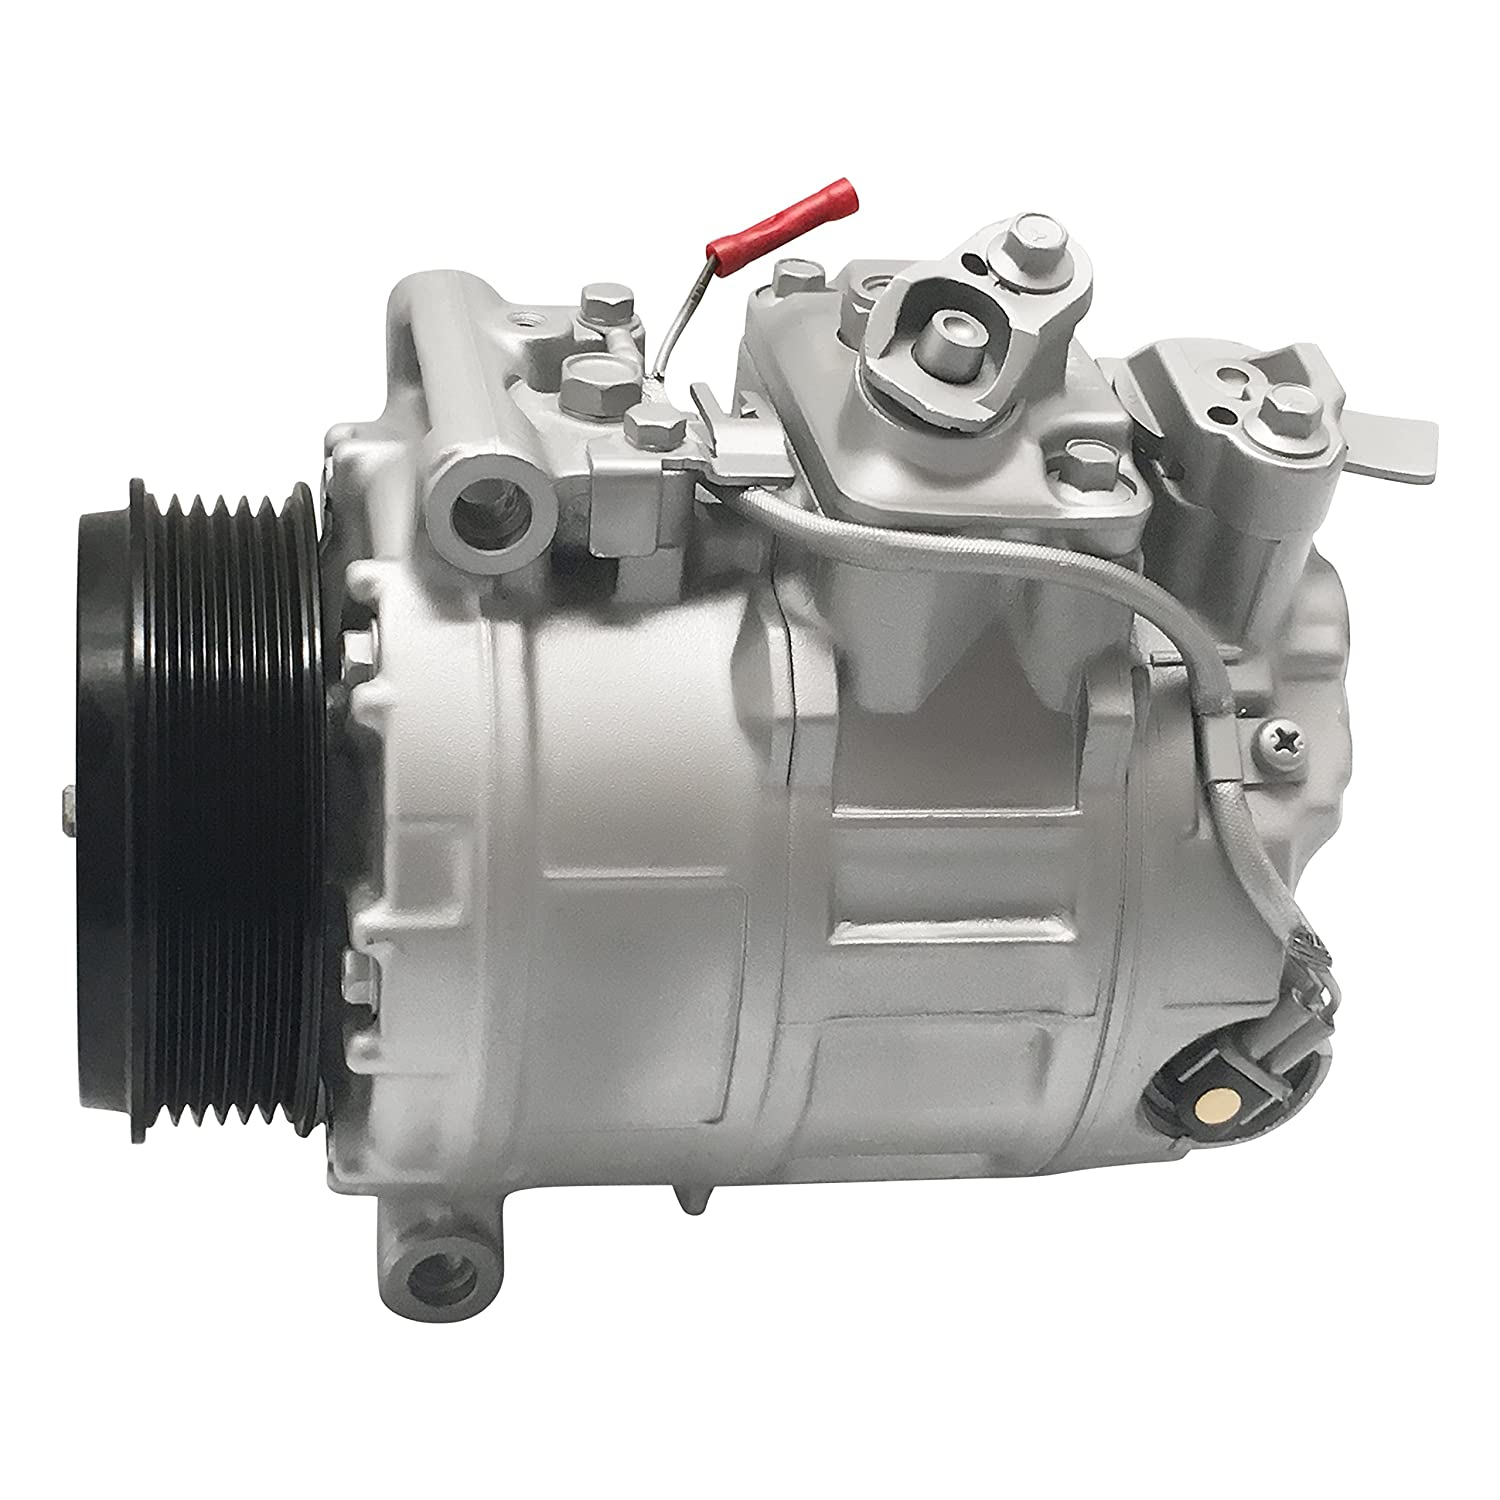 Amazon.com: RYC Remanufactured AC Compressor and A/C Clutch IG356: Automotive